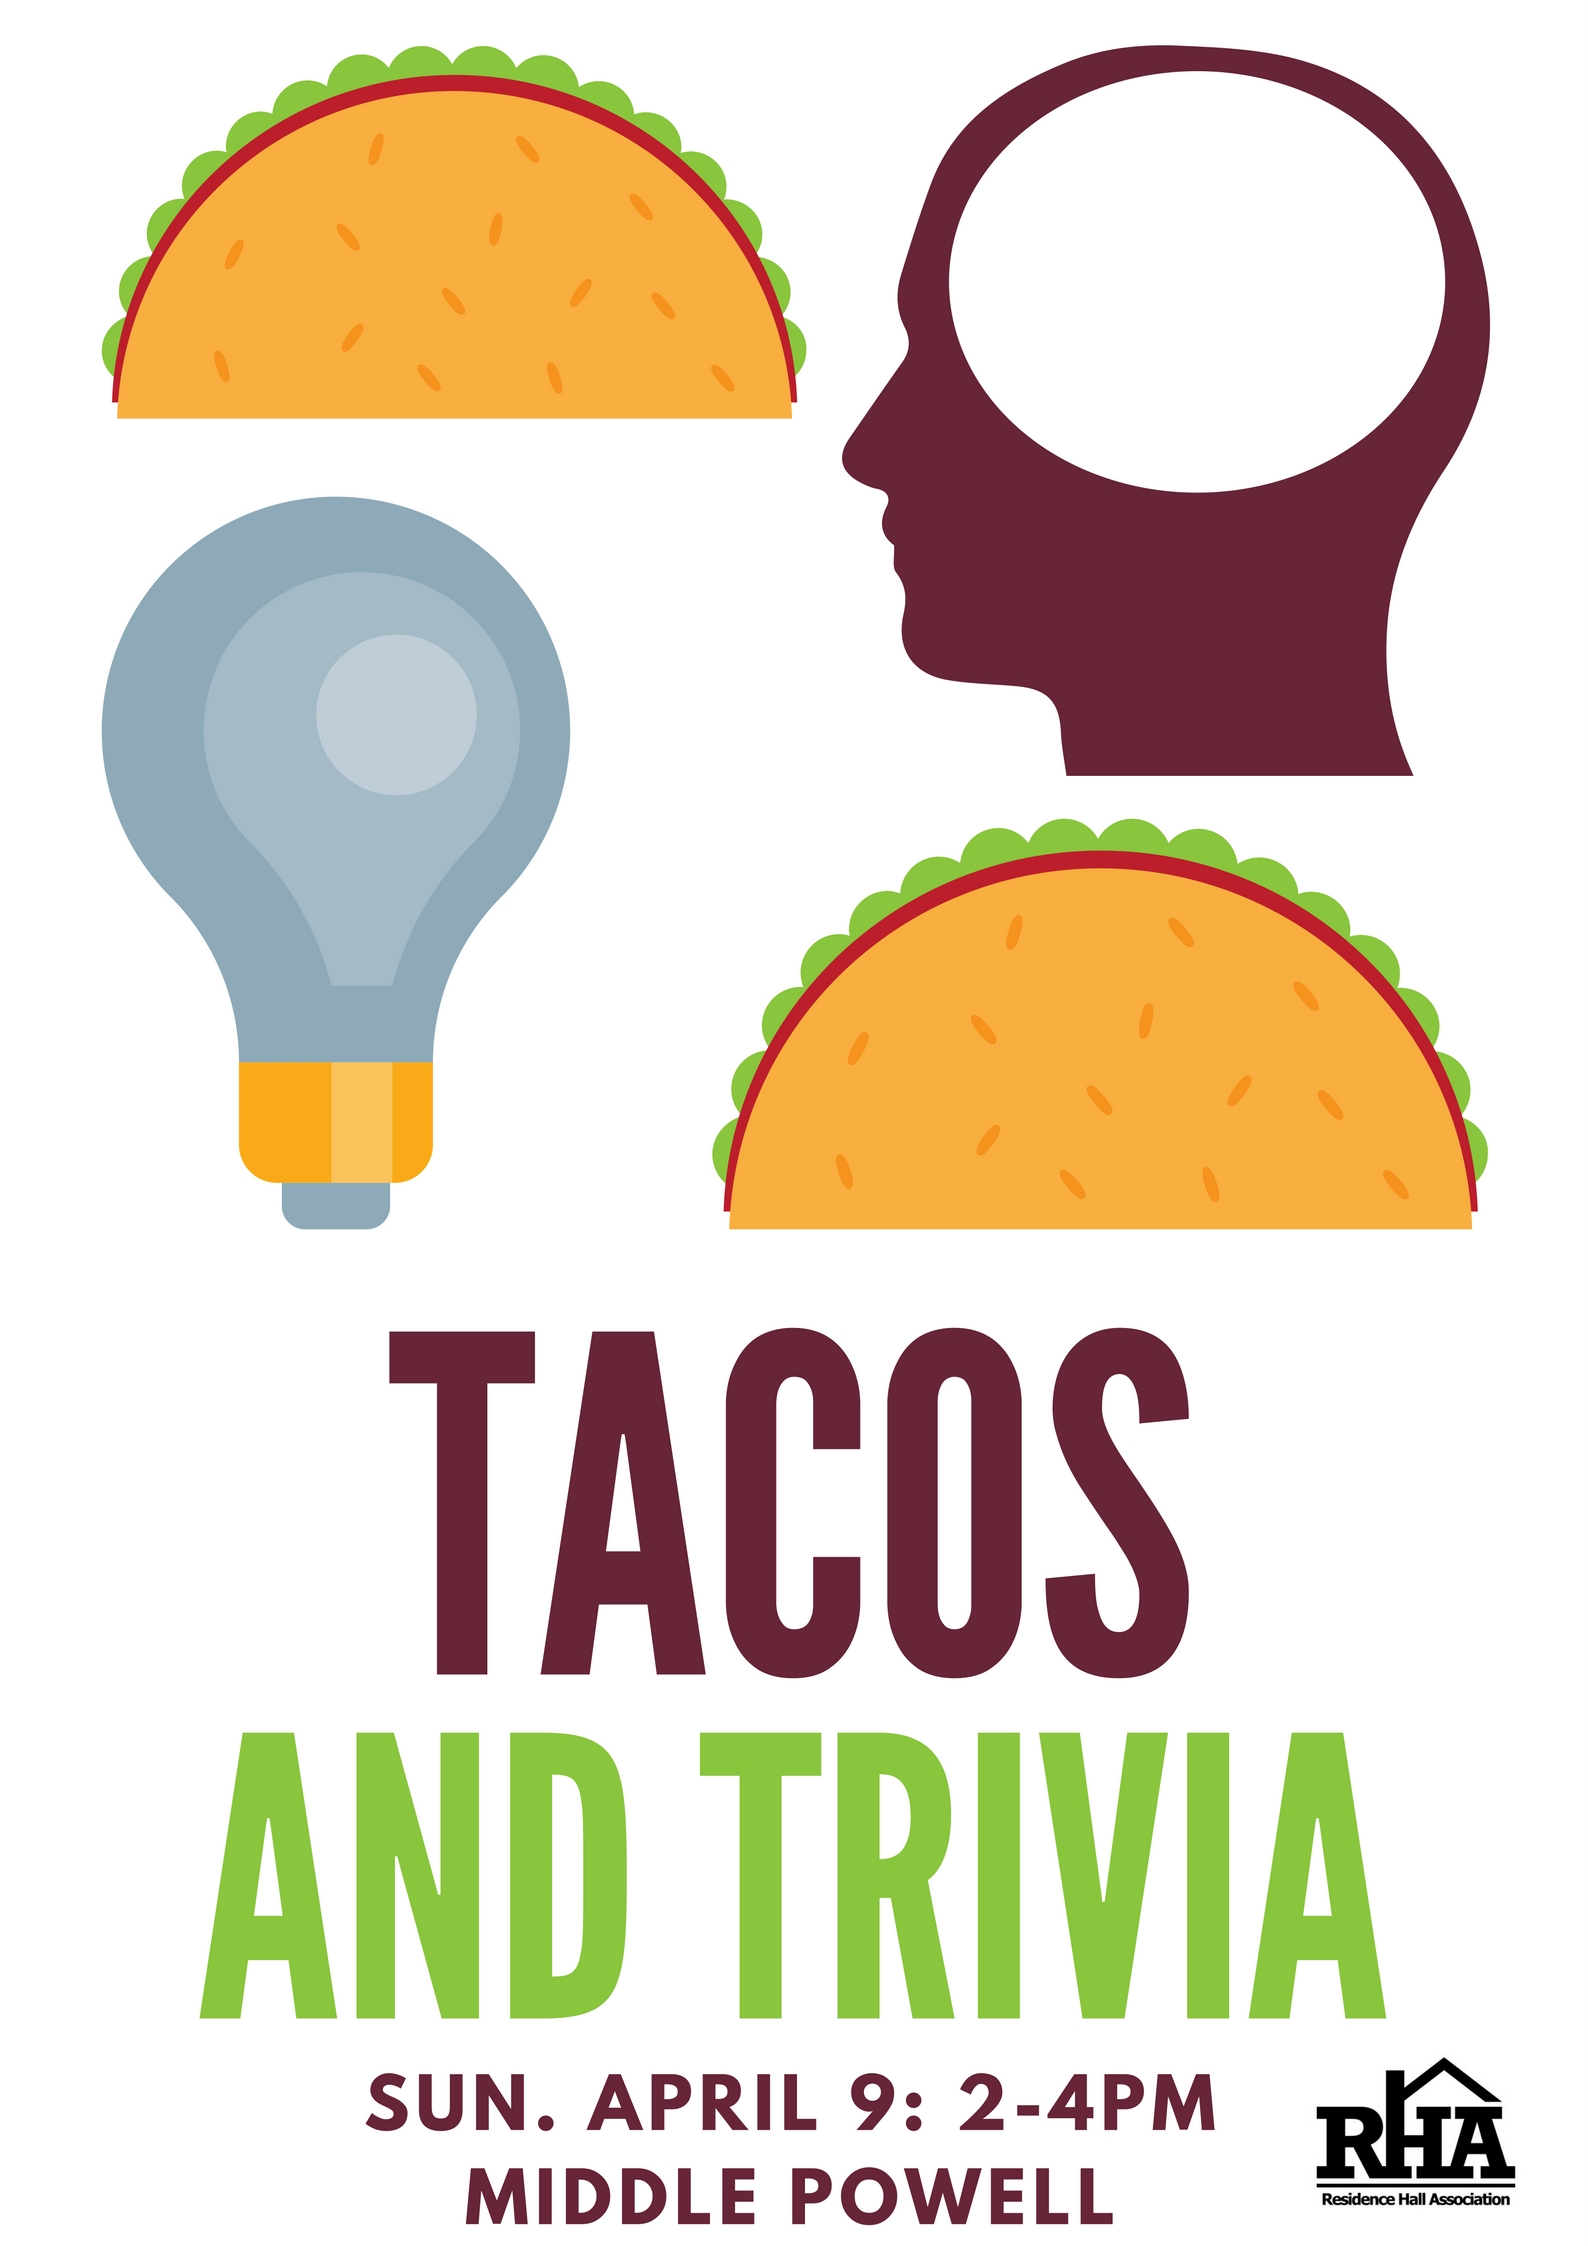 tacsos and trivia